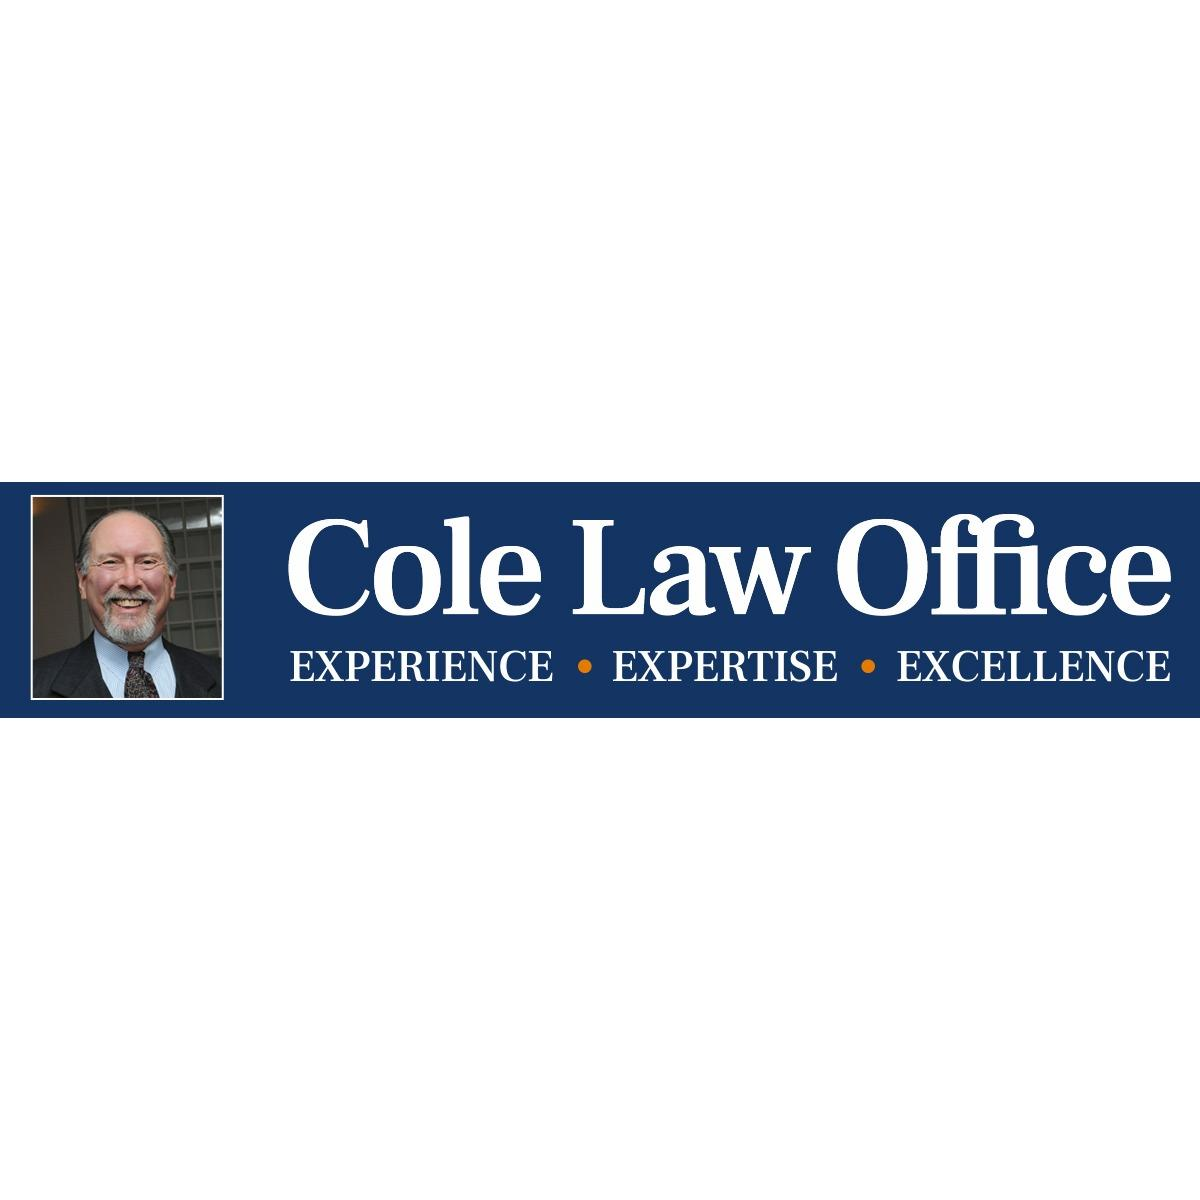 Cole Law Office